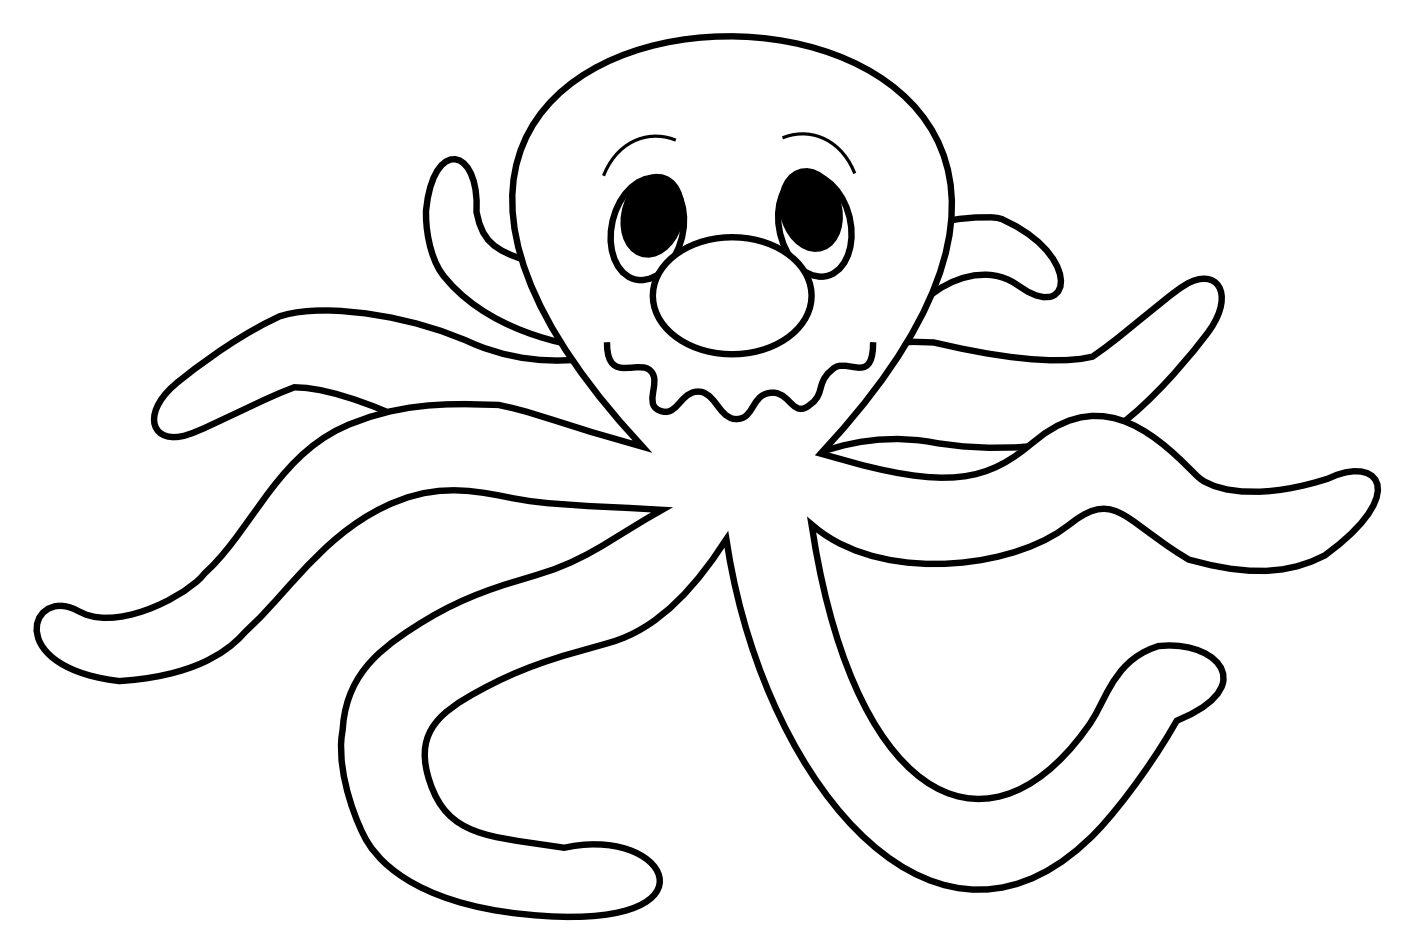 Octopus black and white octopus clipart outline clipartfox 2.